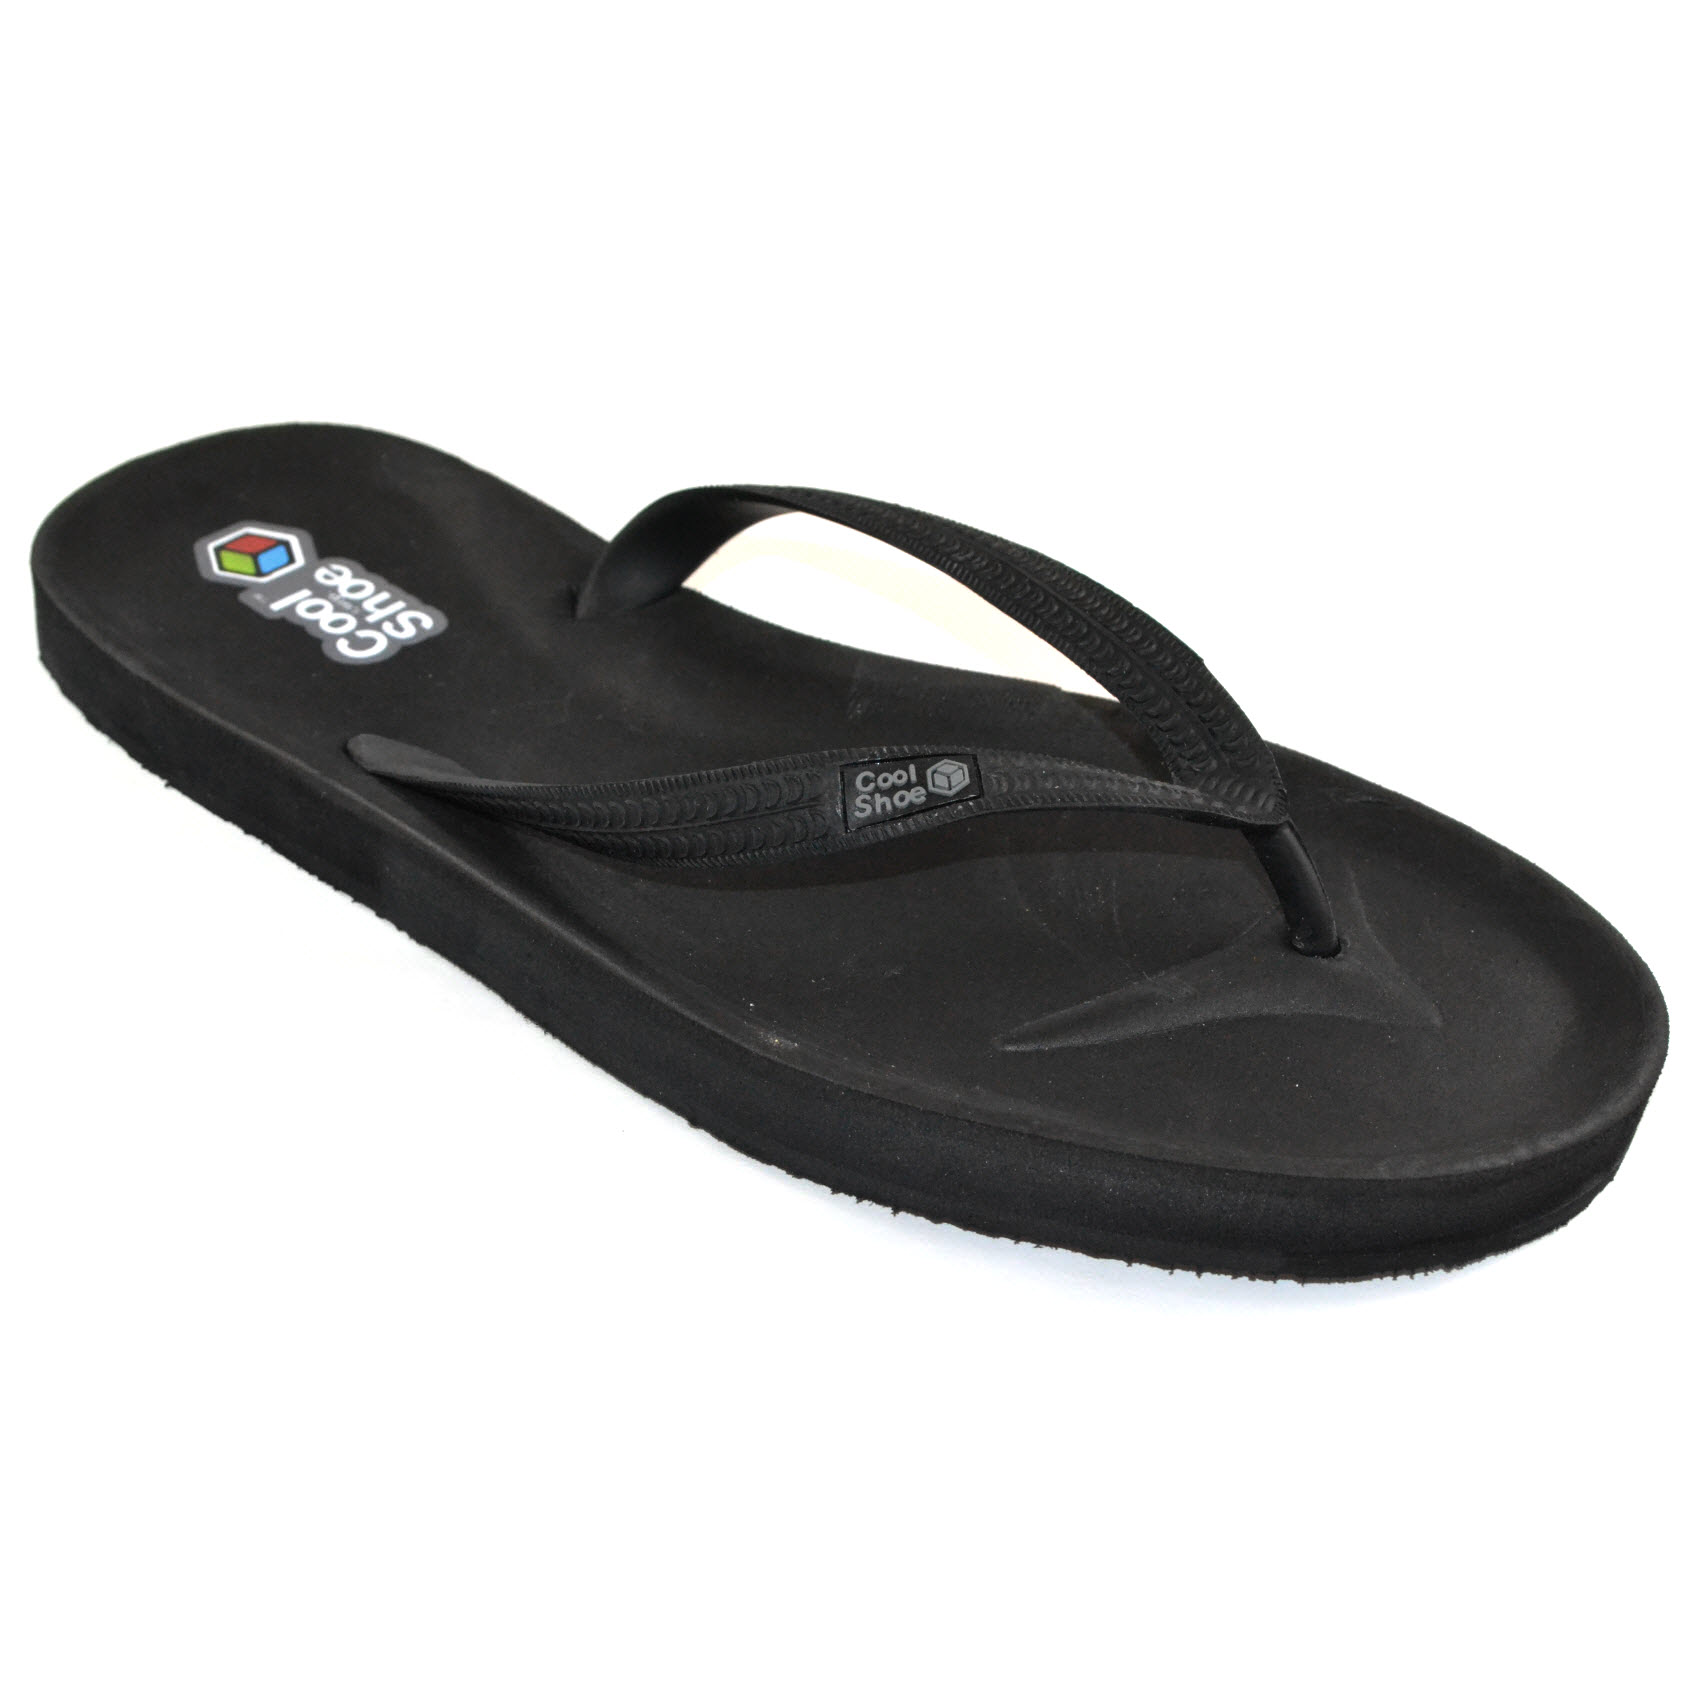 cool shoe pigment mens flip flops footwear the board. Black Bedroom Furniture Sets. Home Design Ideas